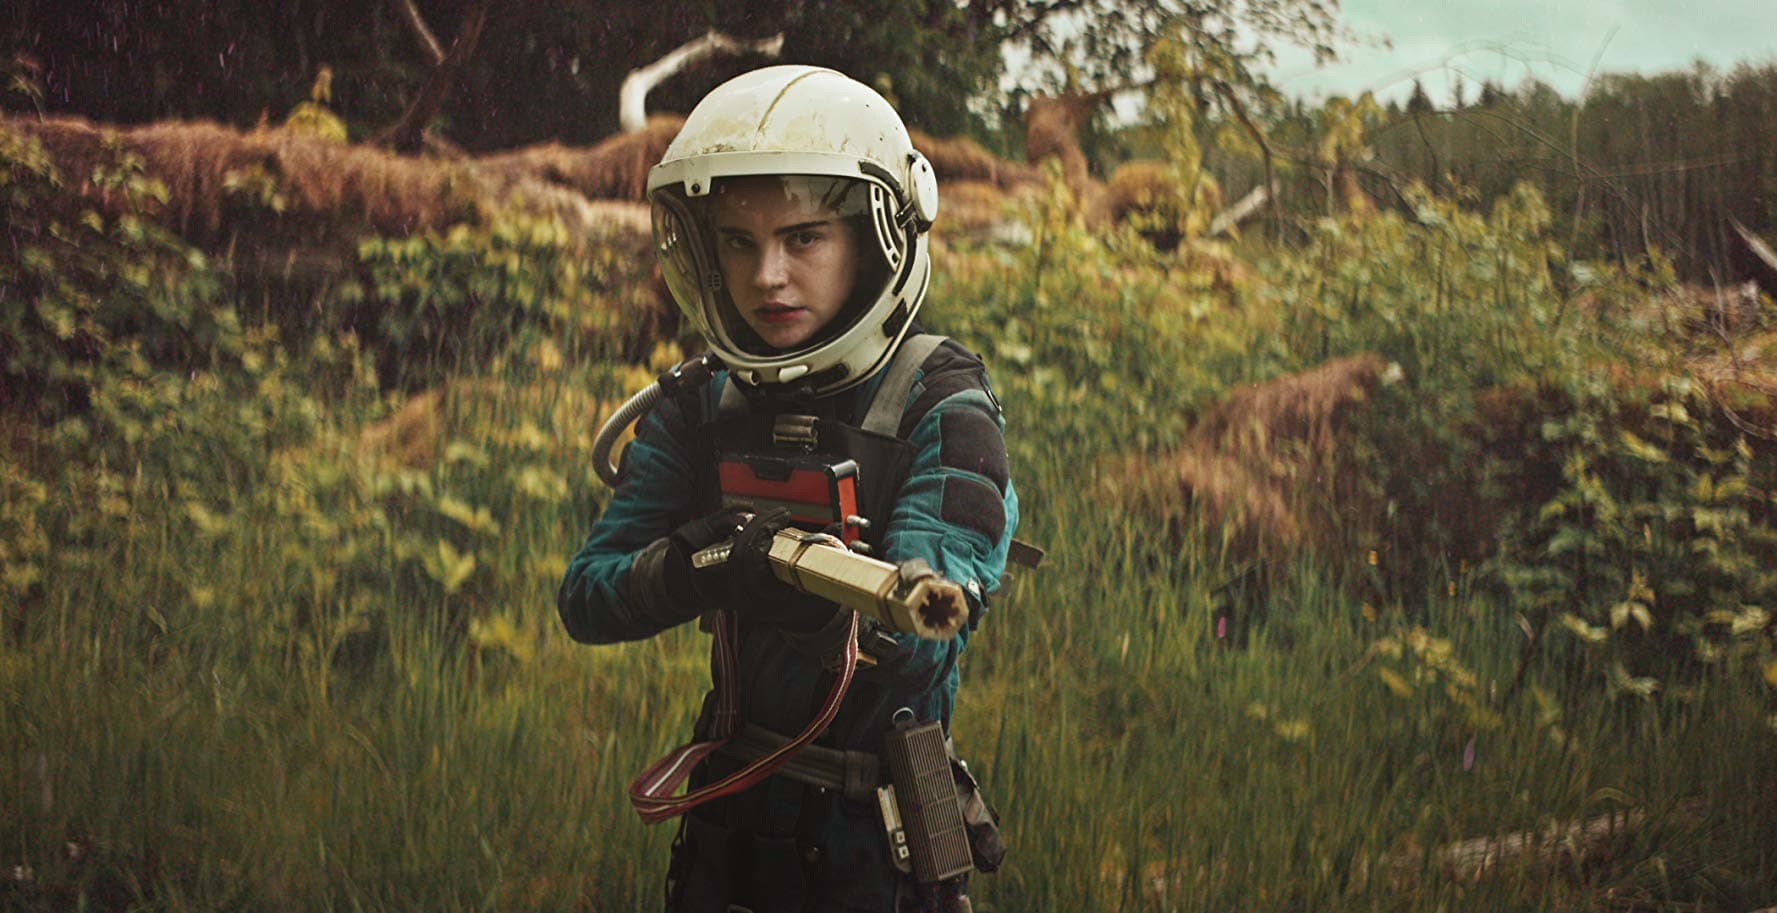 Prospect: A man and his teenage daughter travel to an alien moon with a contract to mine gems in the moon's poisonous forest. The daughter is forced to face other people in the forest, as well as her own father's greed.